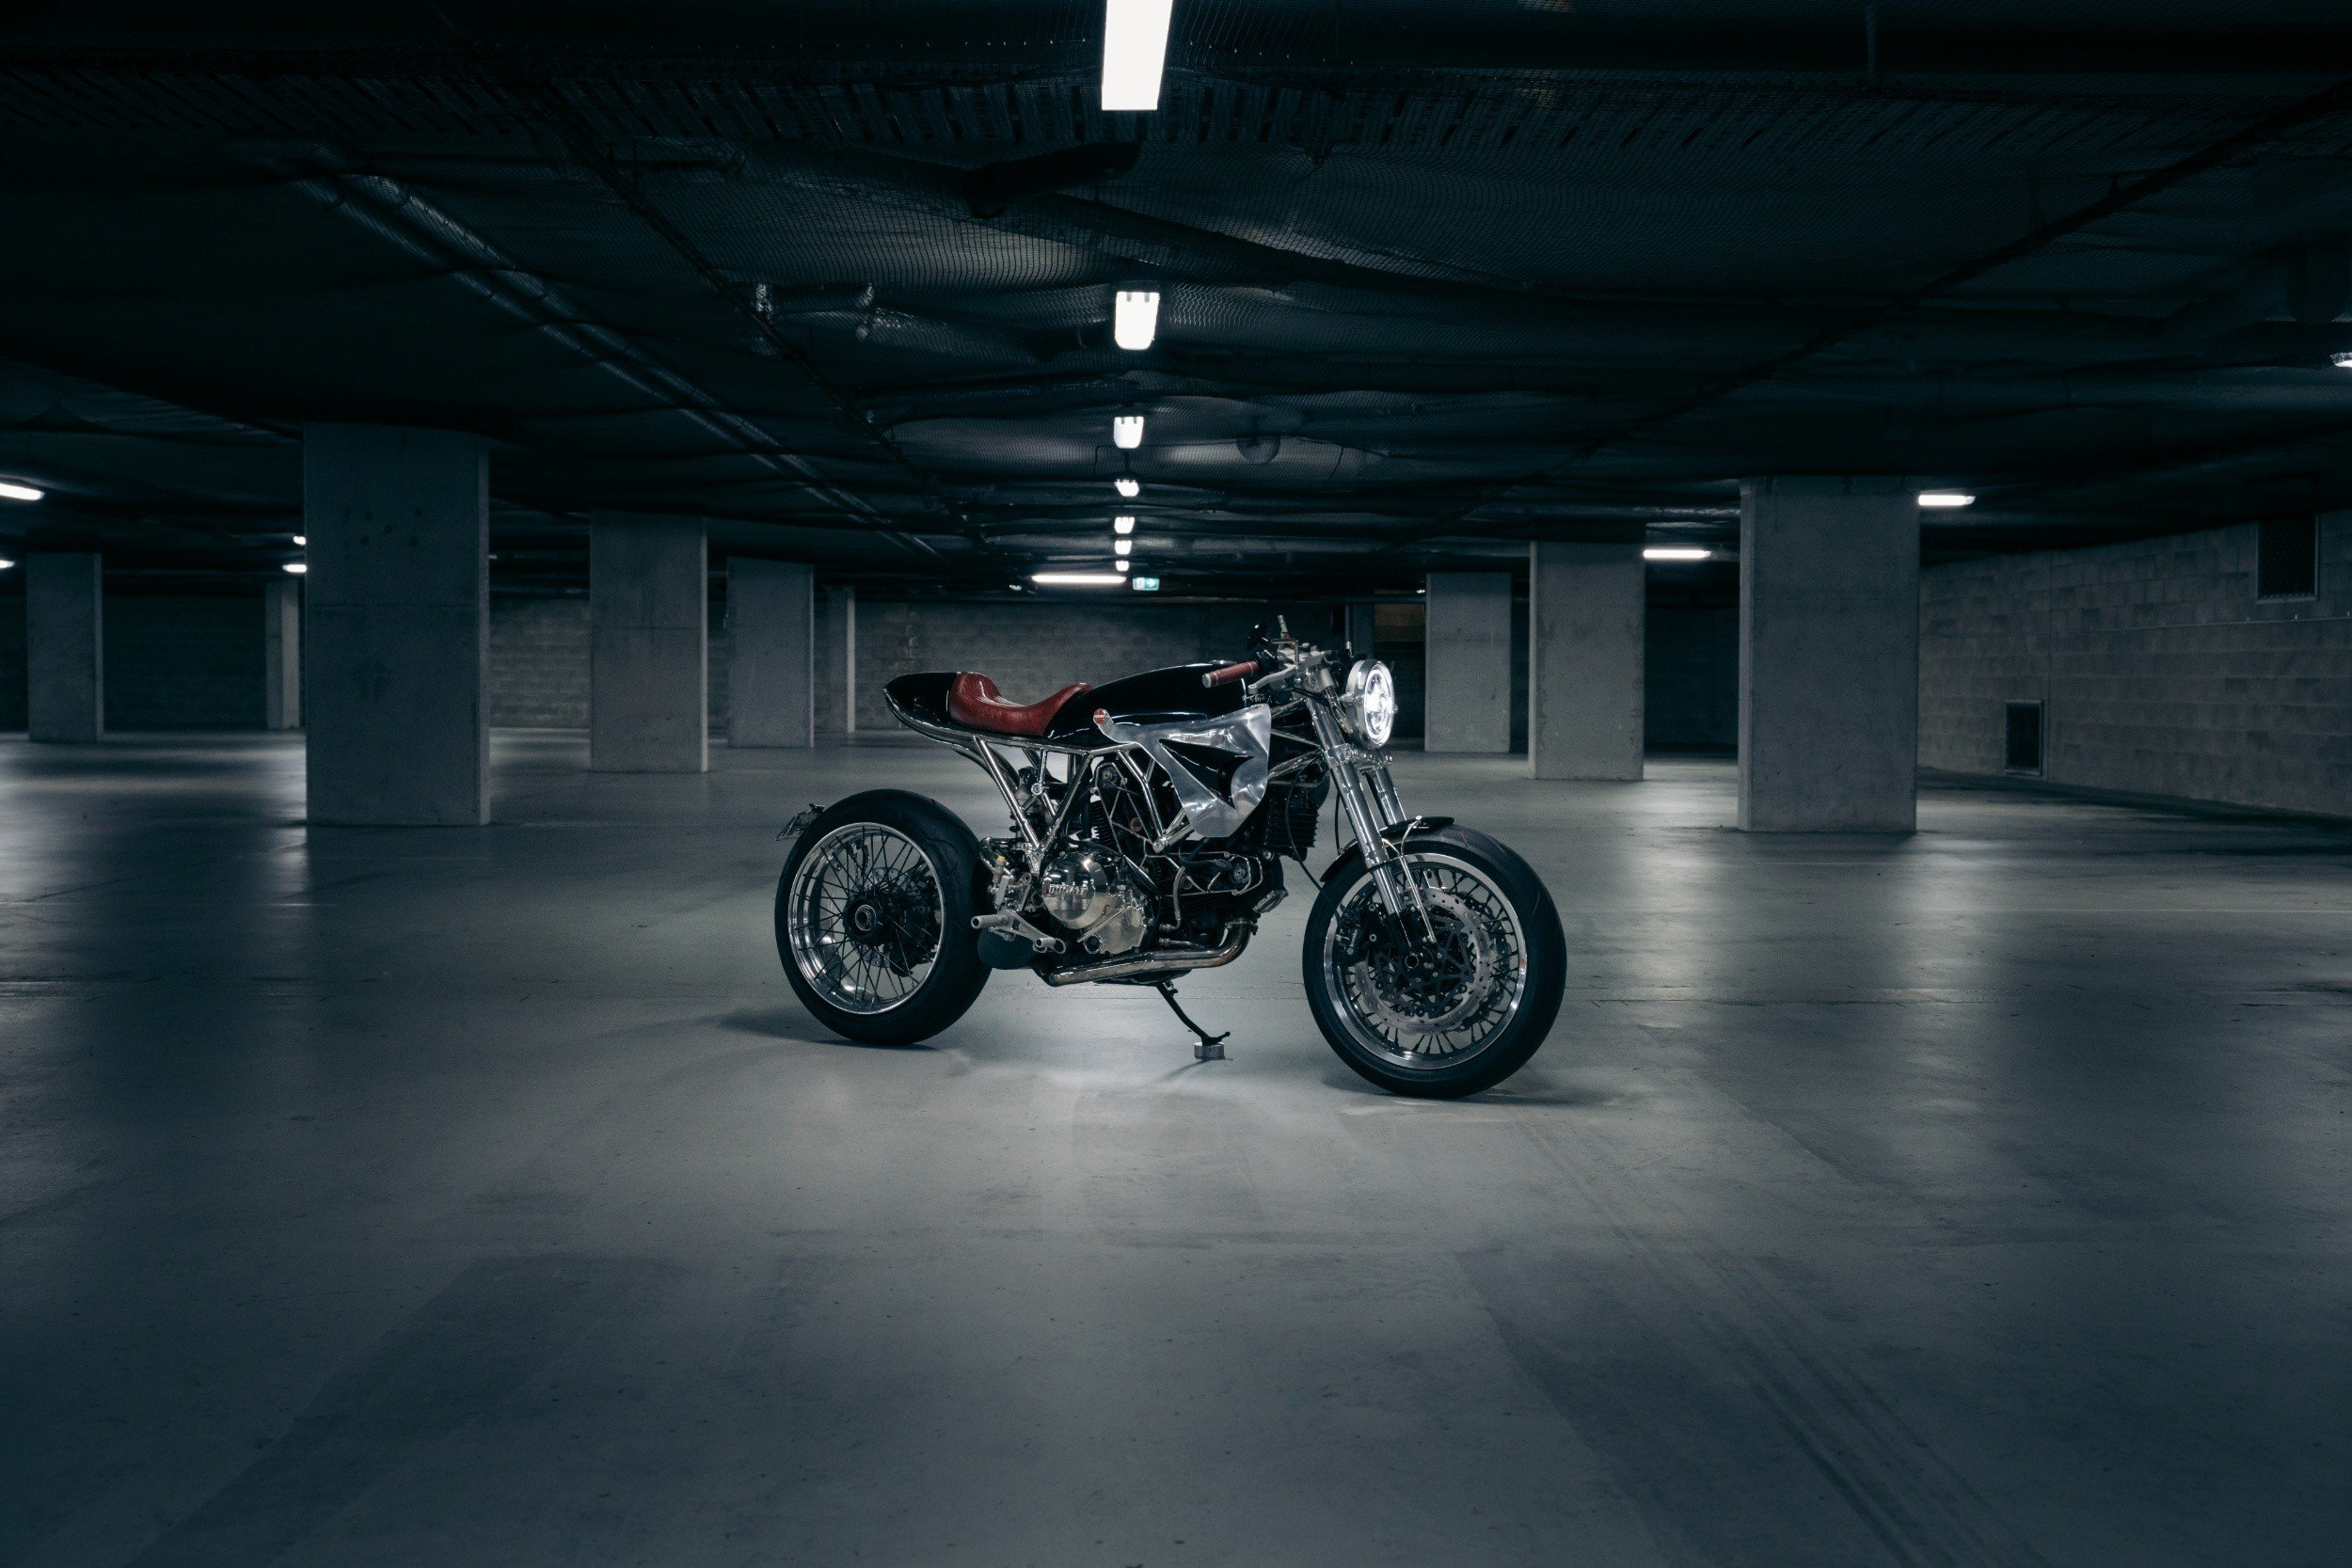 ducati GT1000 wallpaper cafe racer